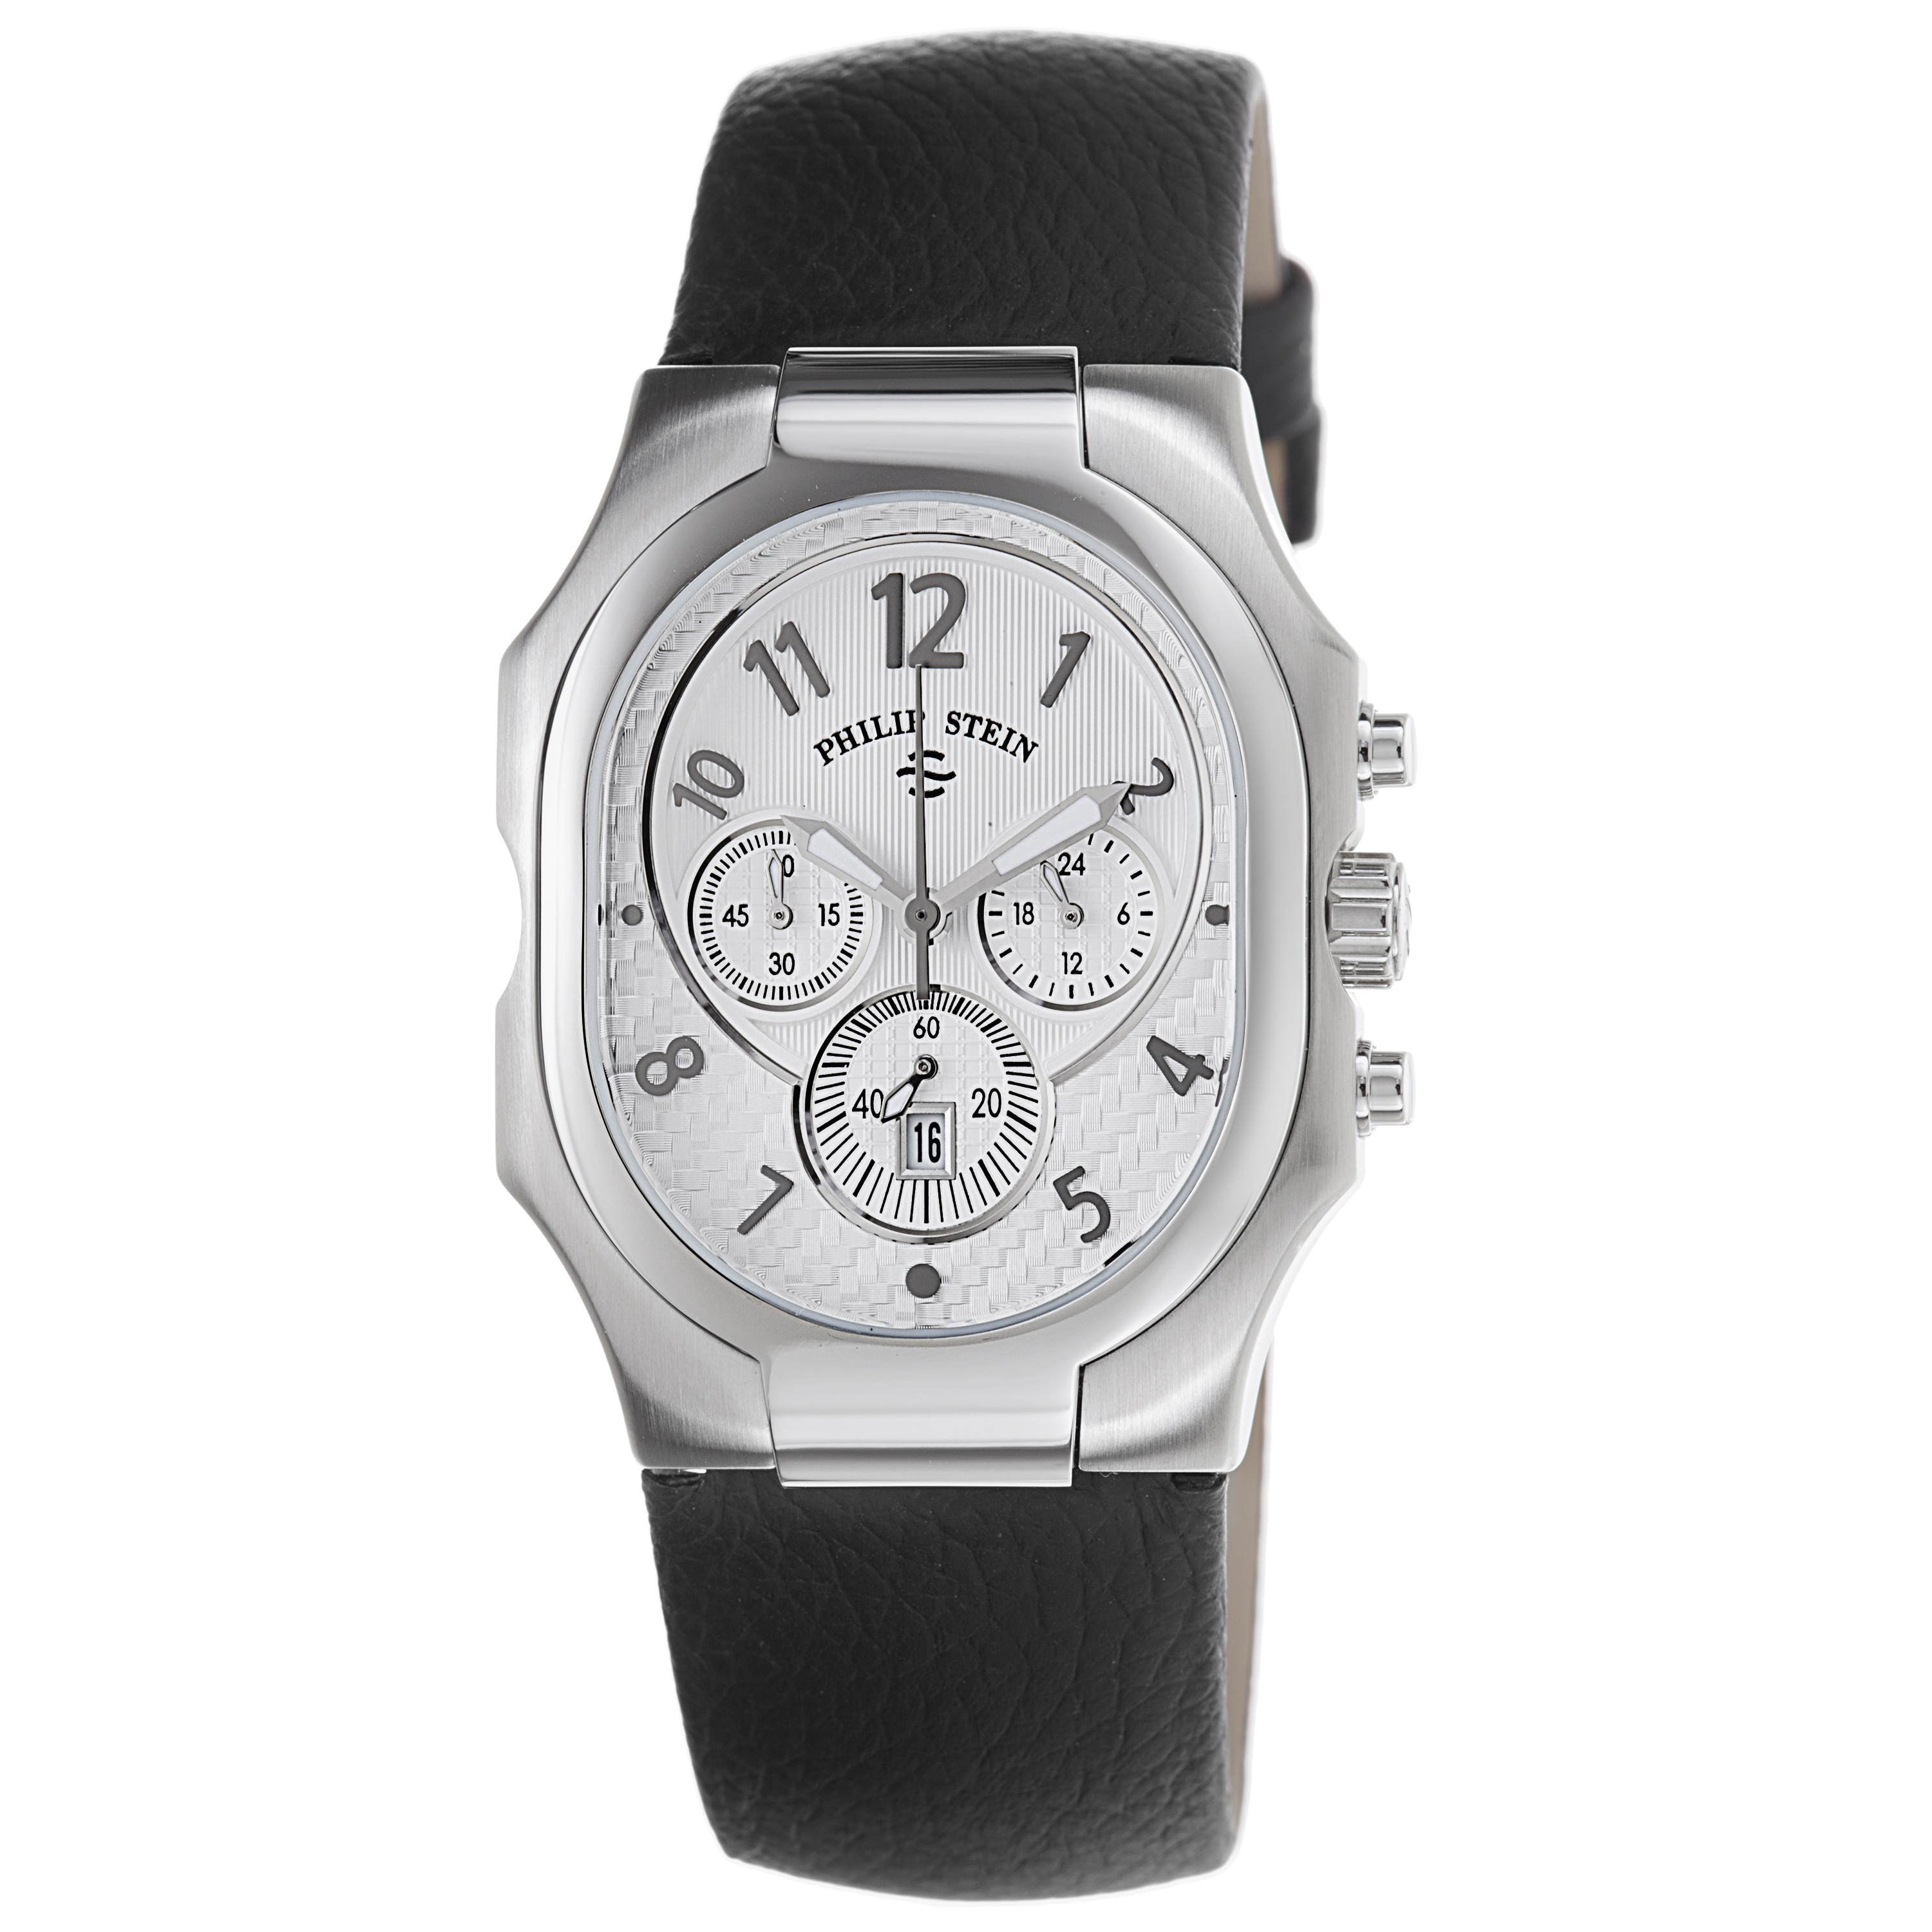 Philip stein men 39 s 39 signature 39 chronograph black strap watch free shipping today overstock for Philip stein watches